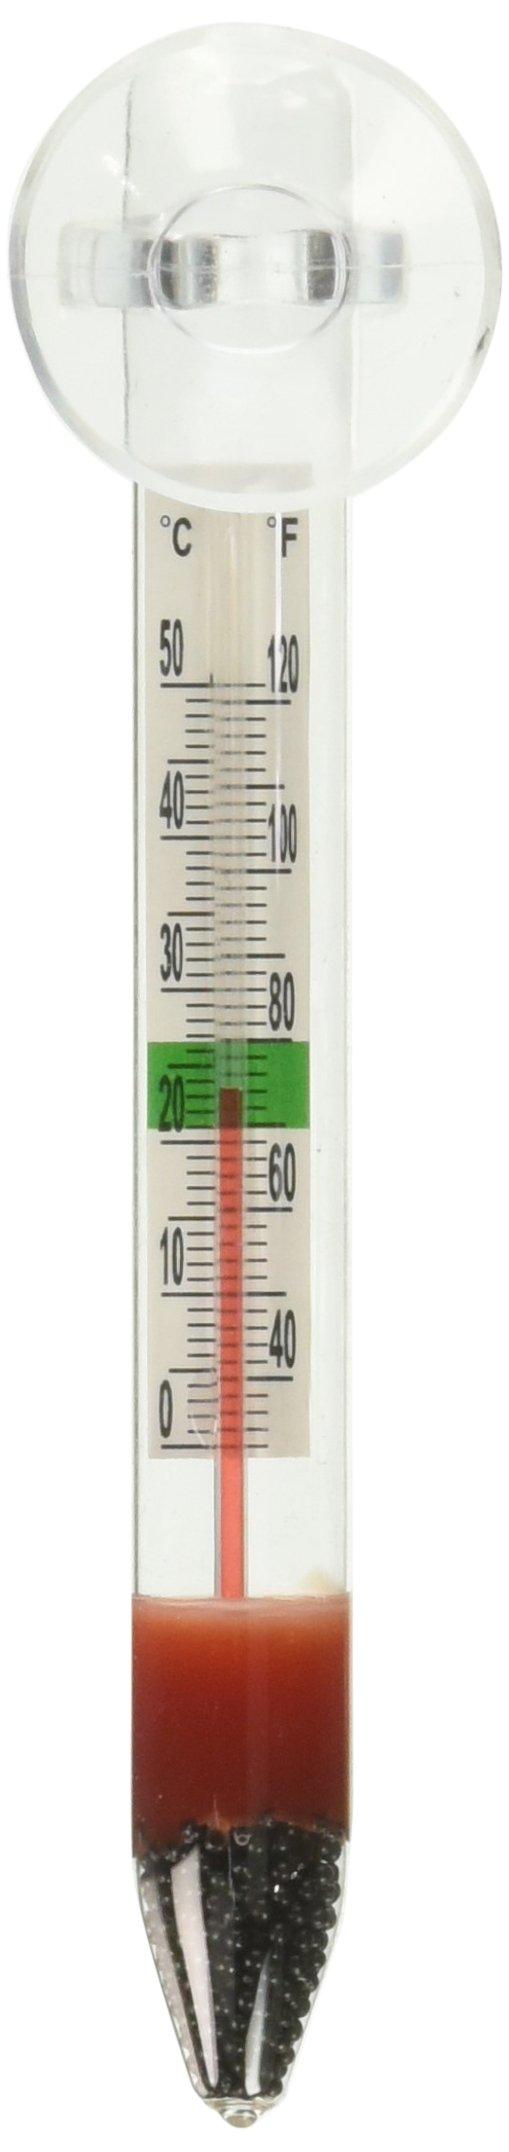 Floating Thermometer with Suction Cup